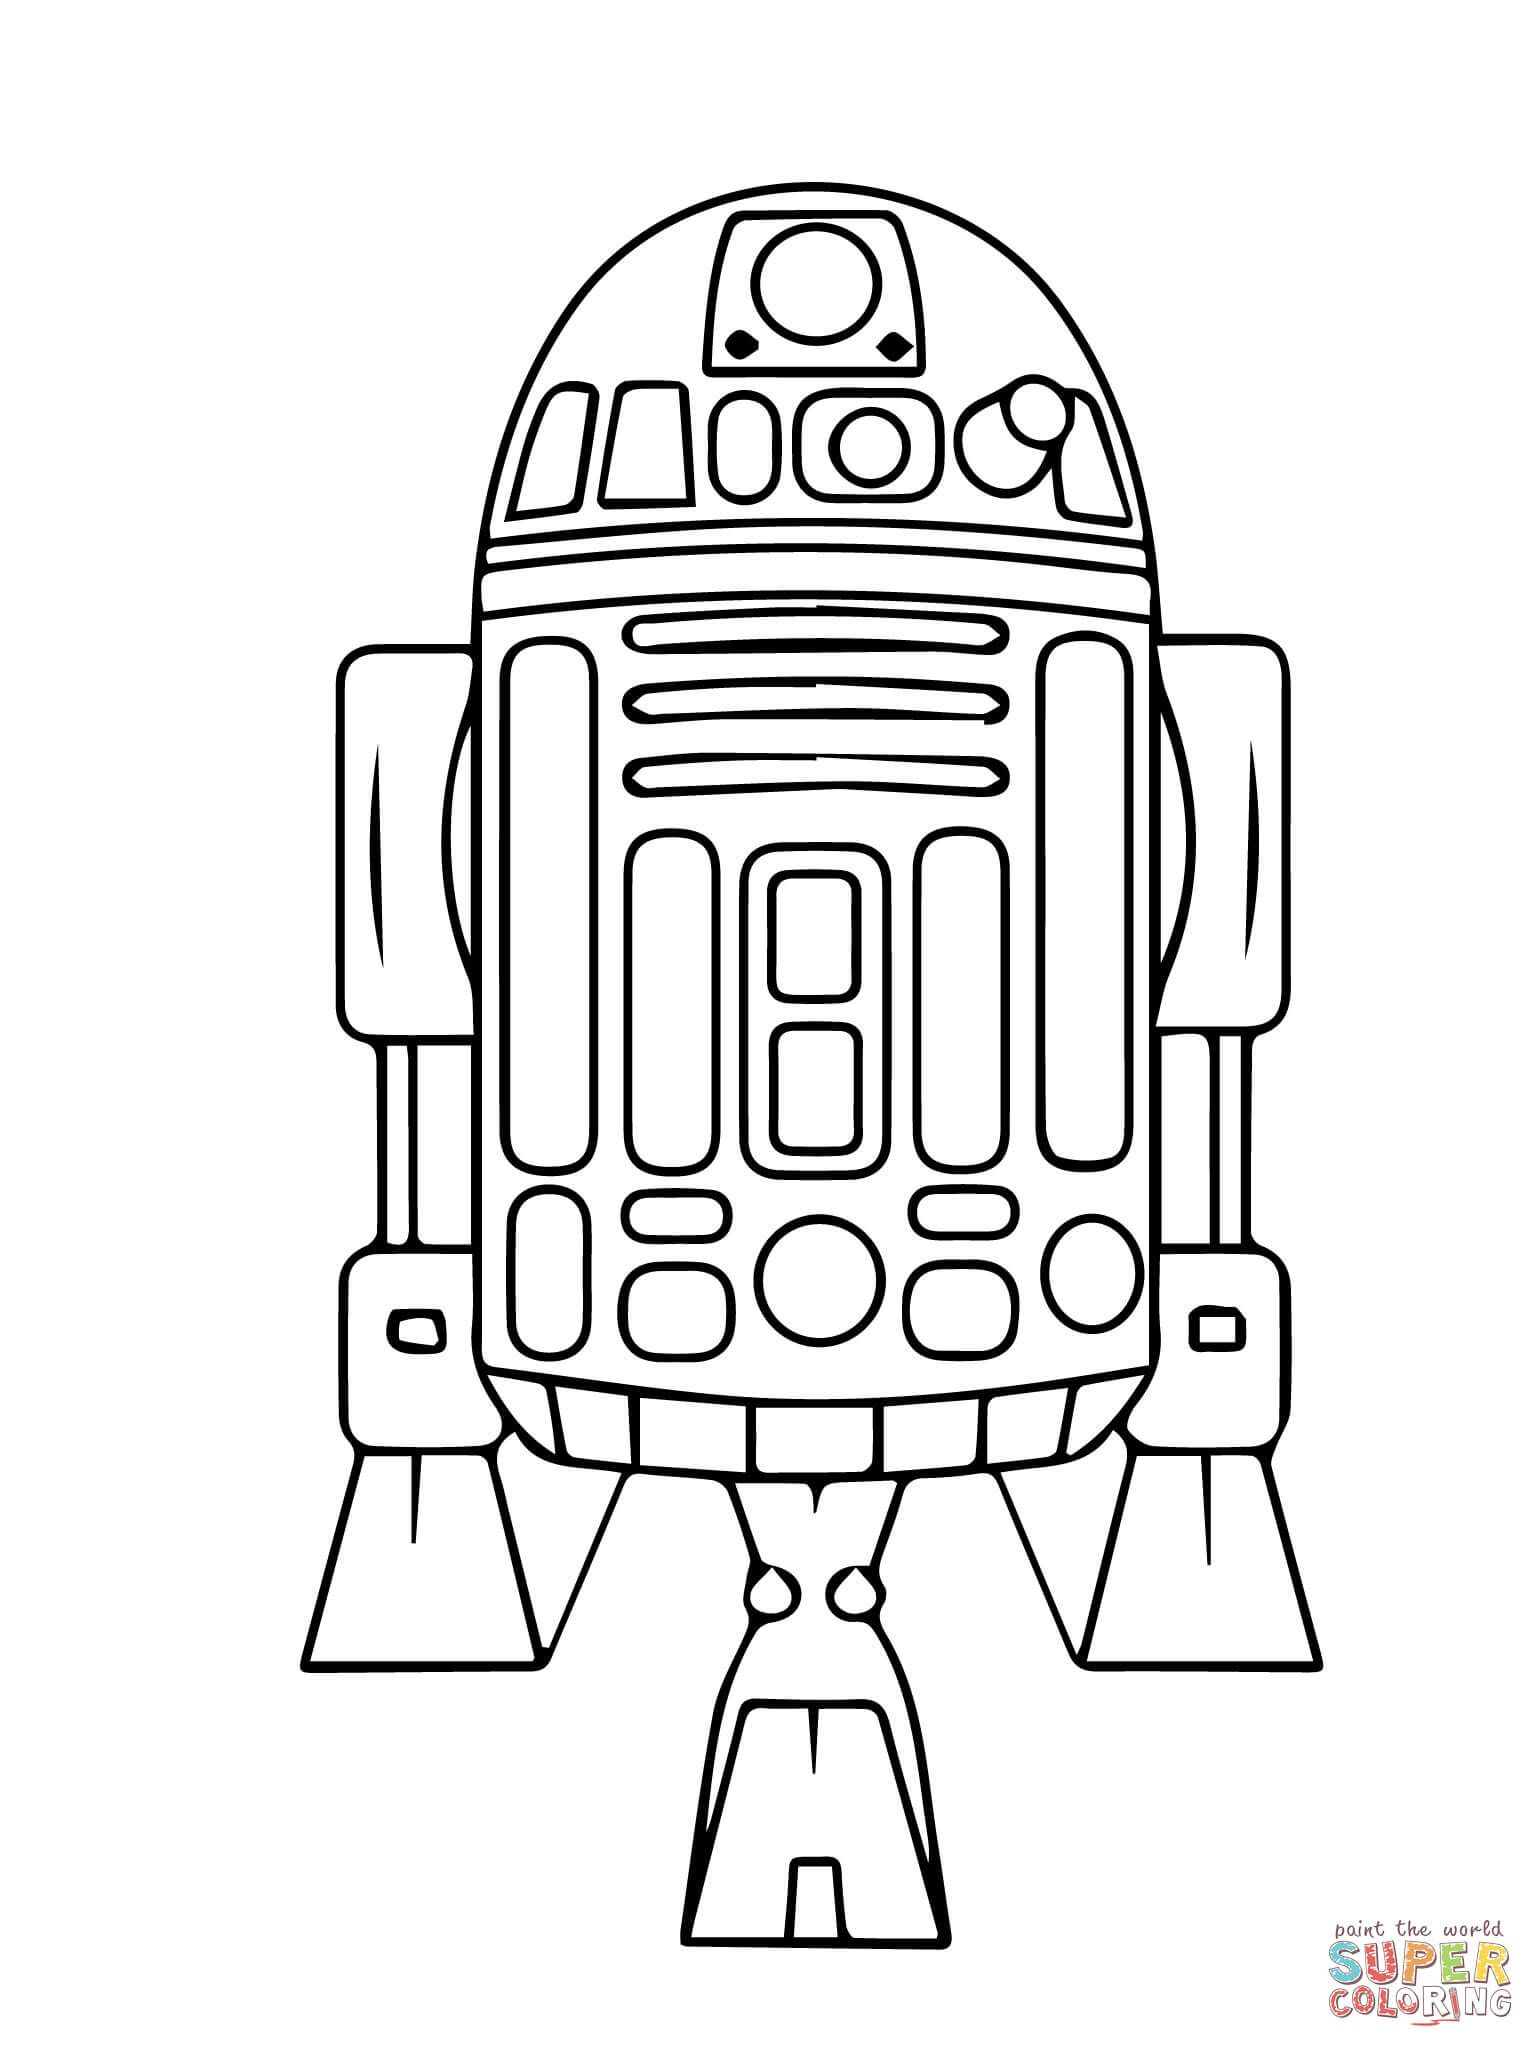 astromech droid coloring page from the phantom menace category select from 24848 printable crafts of cartoons nature animals bible and many more